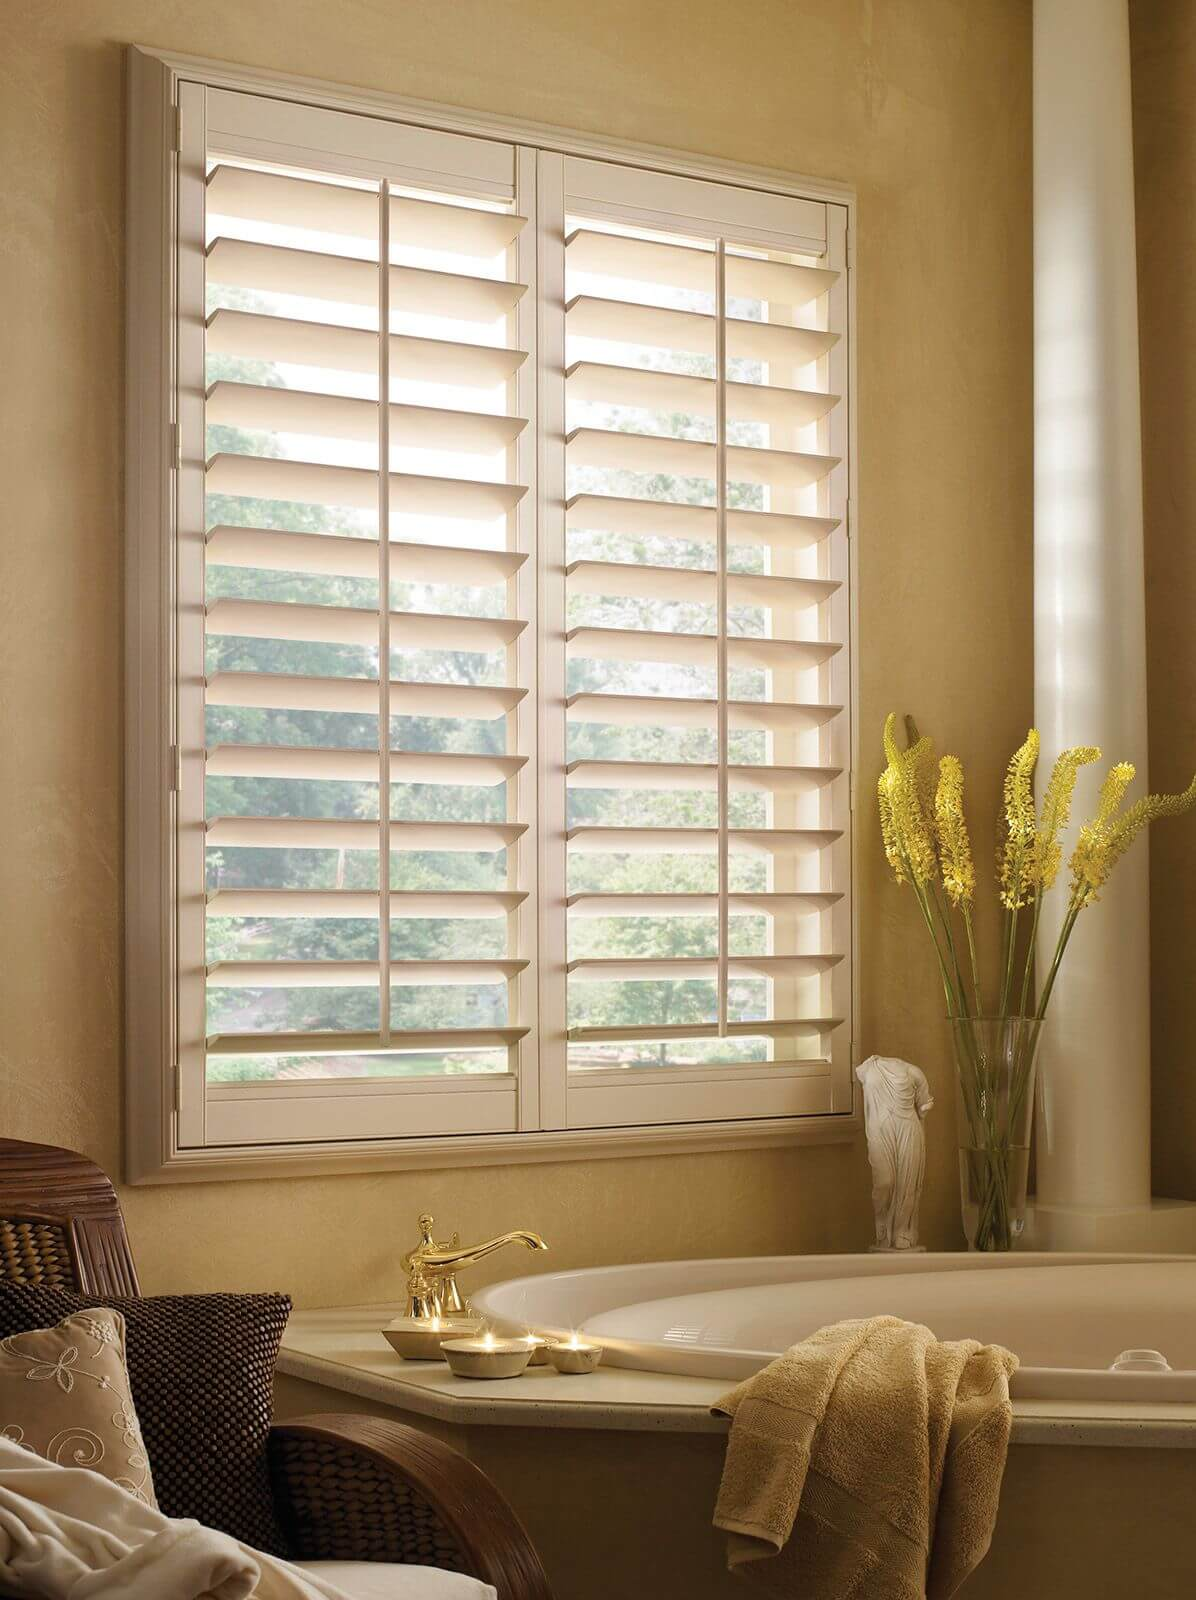 Cleaning methods for your shutters will differ depending on the material of the window treatment.